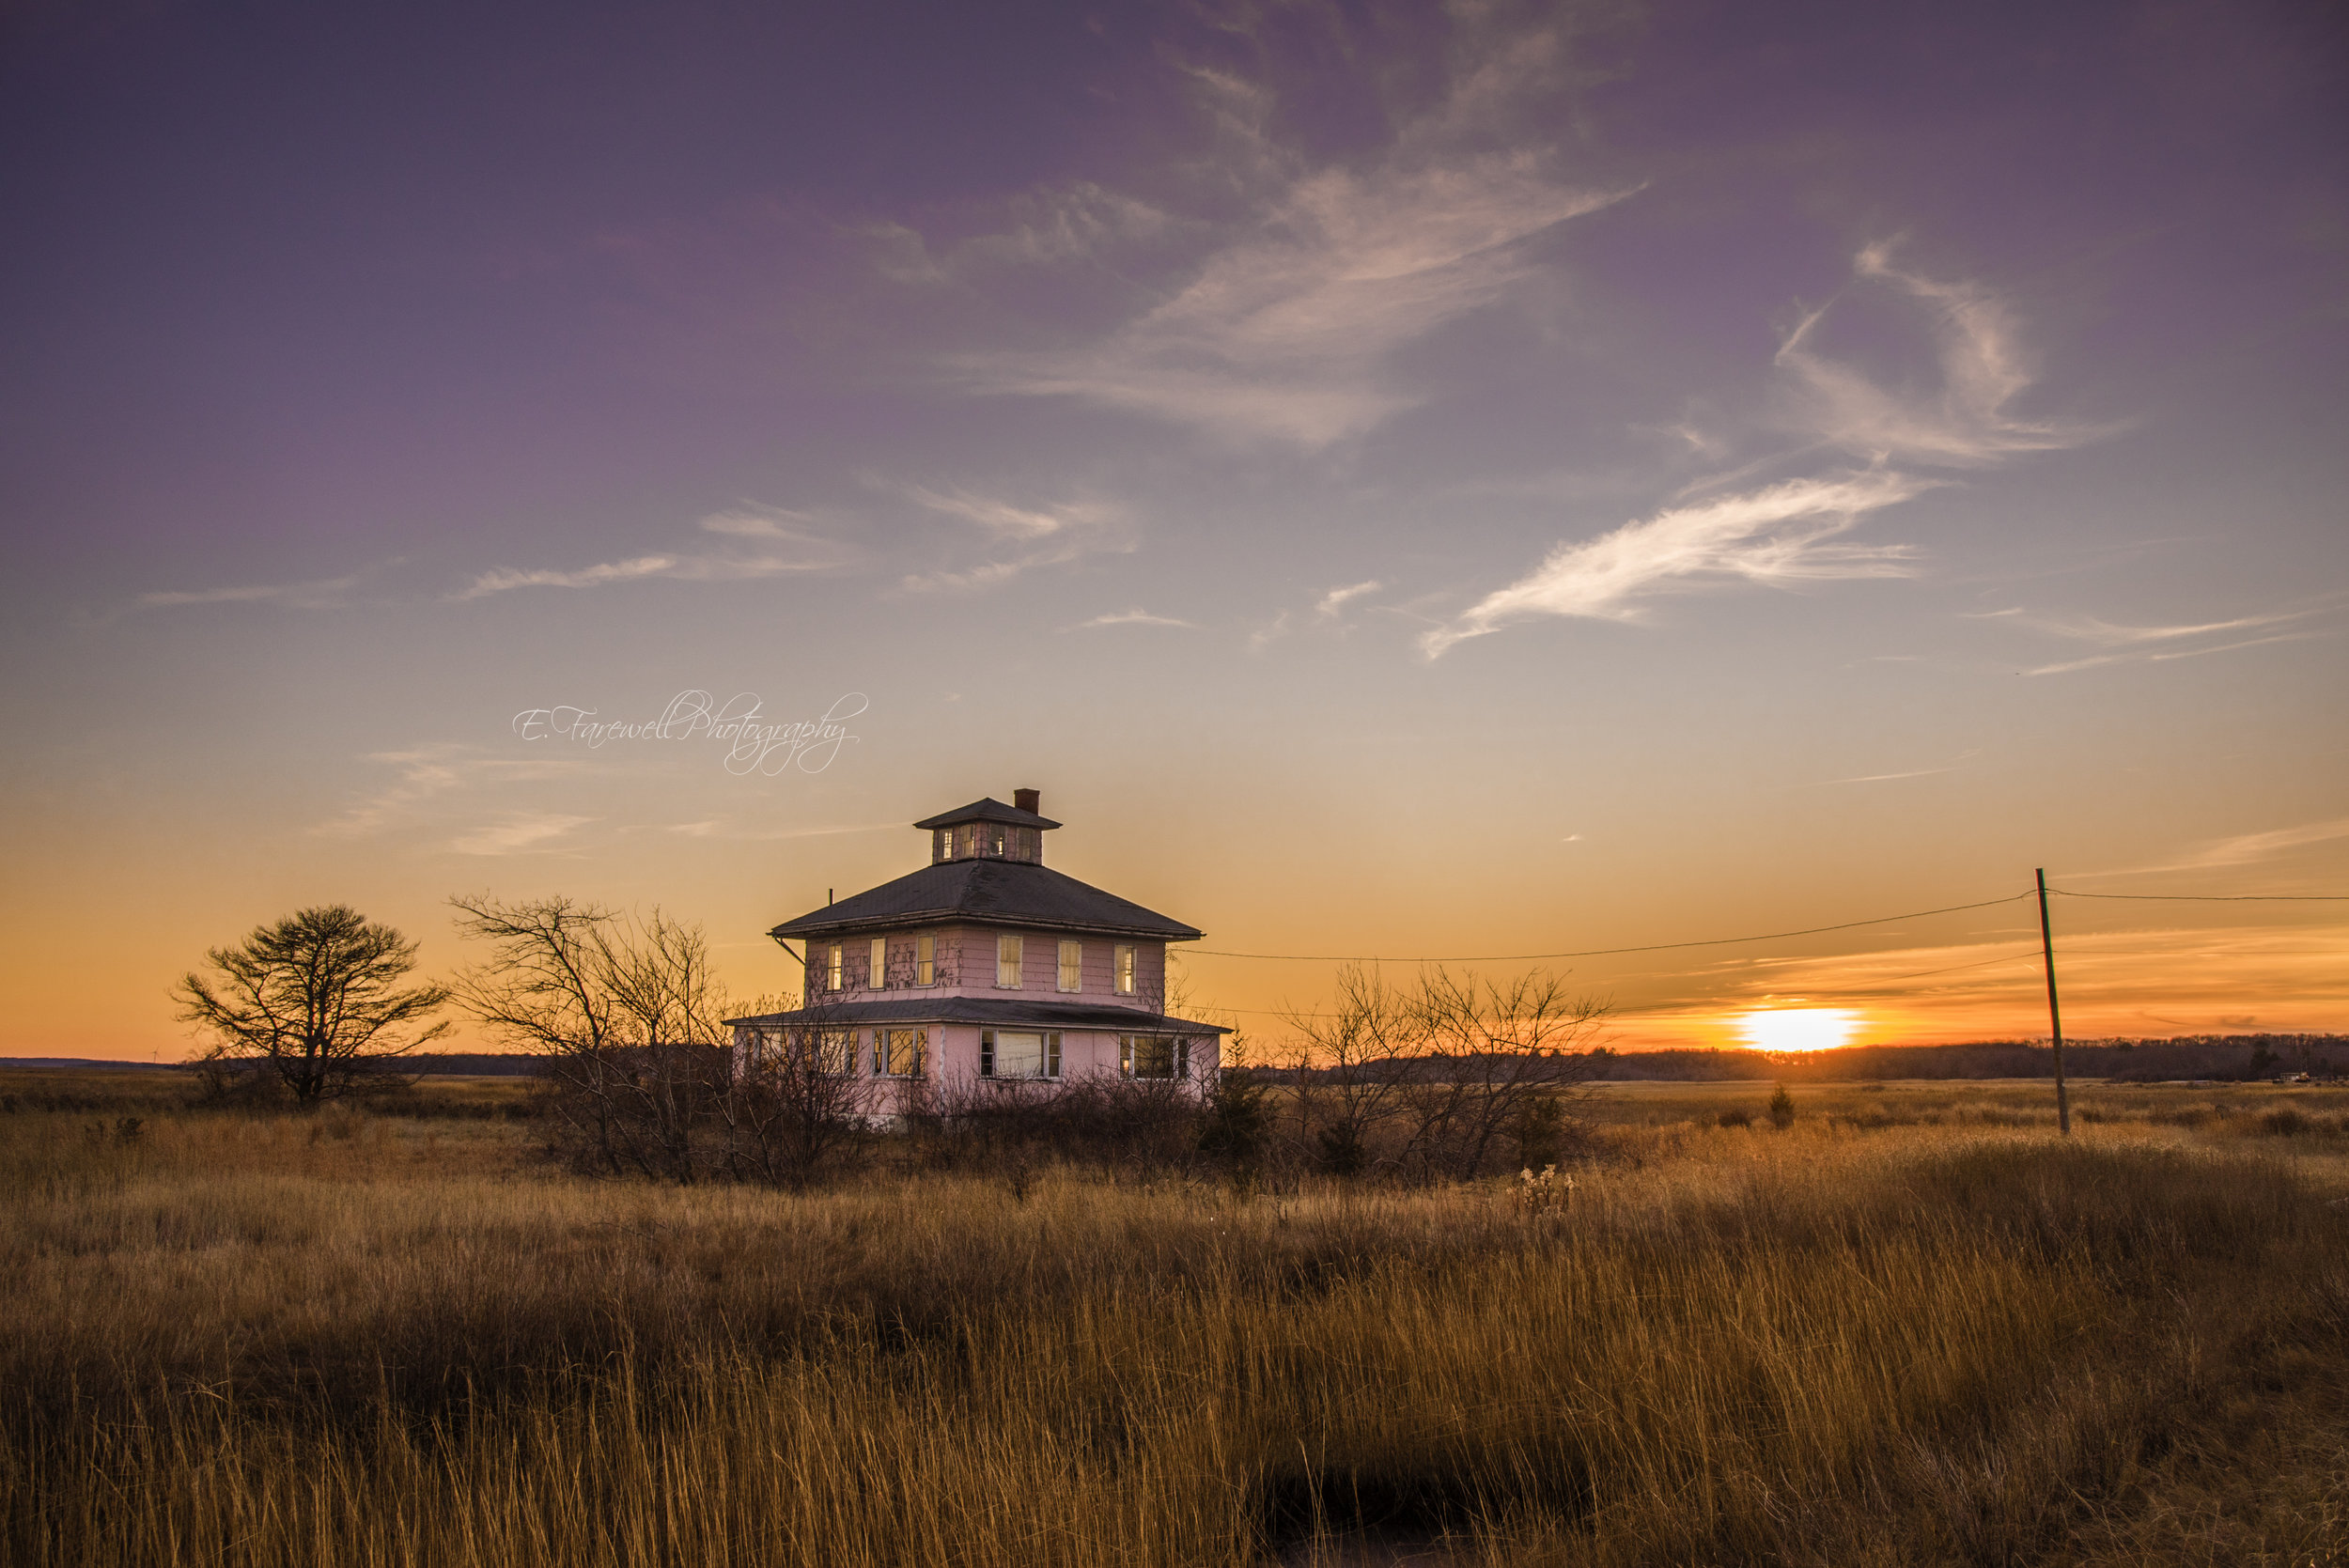 Pink House Plum Island Sunset - Emily Farewell